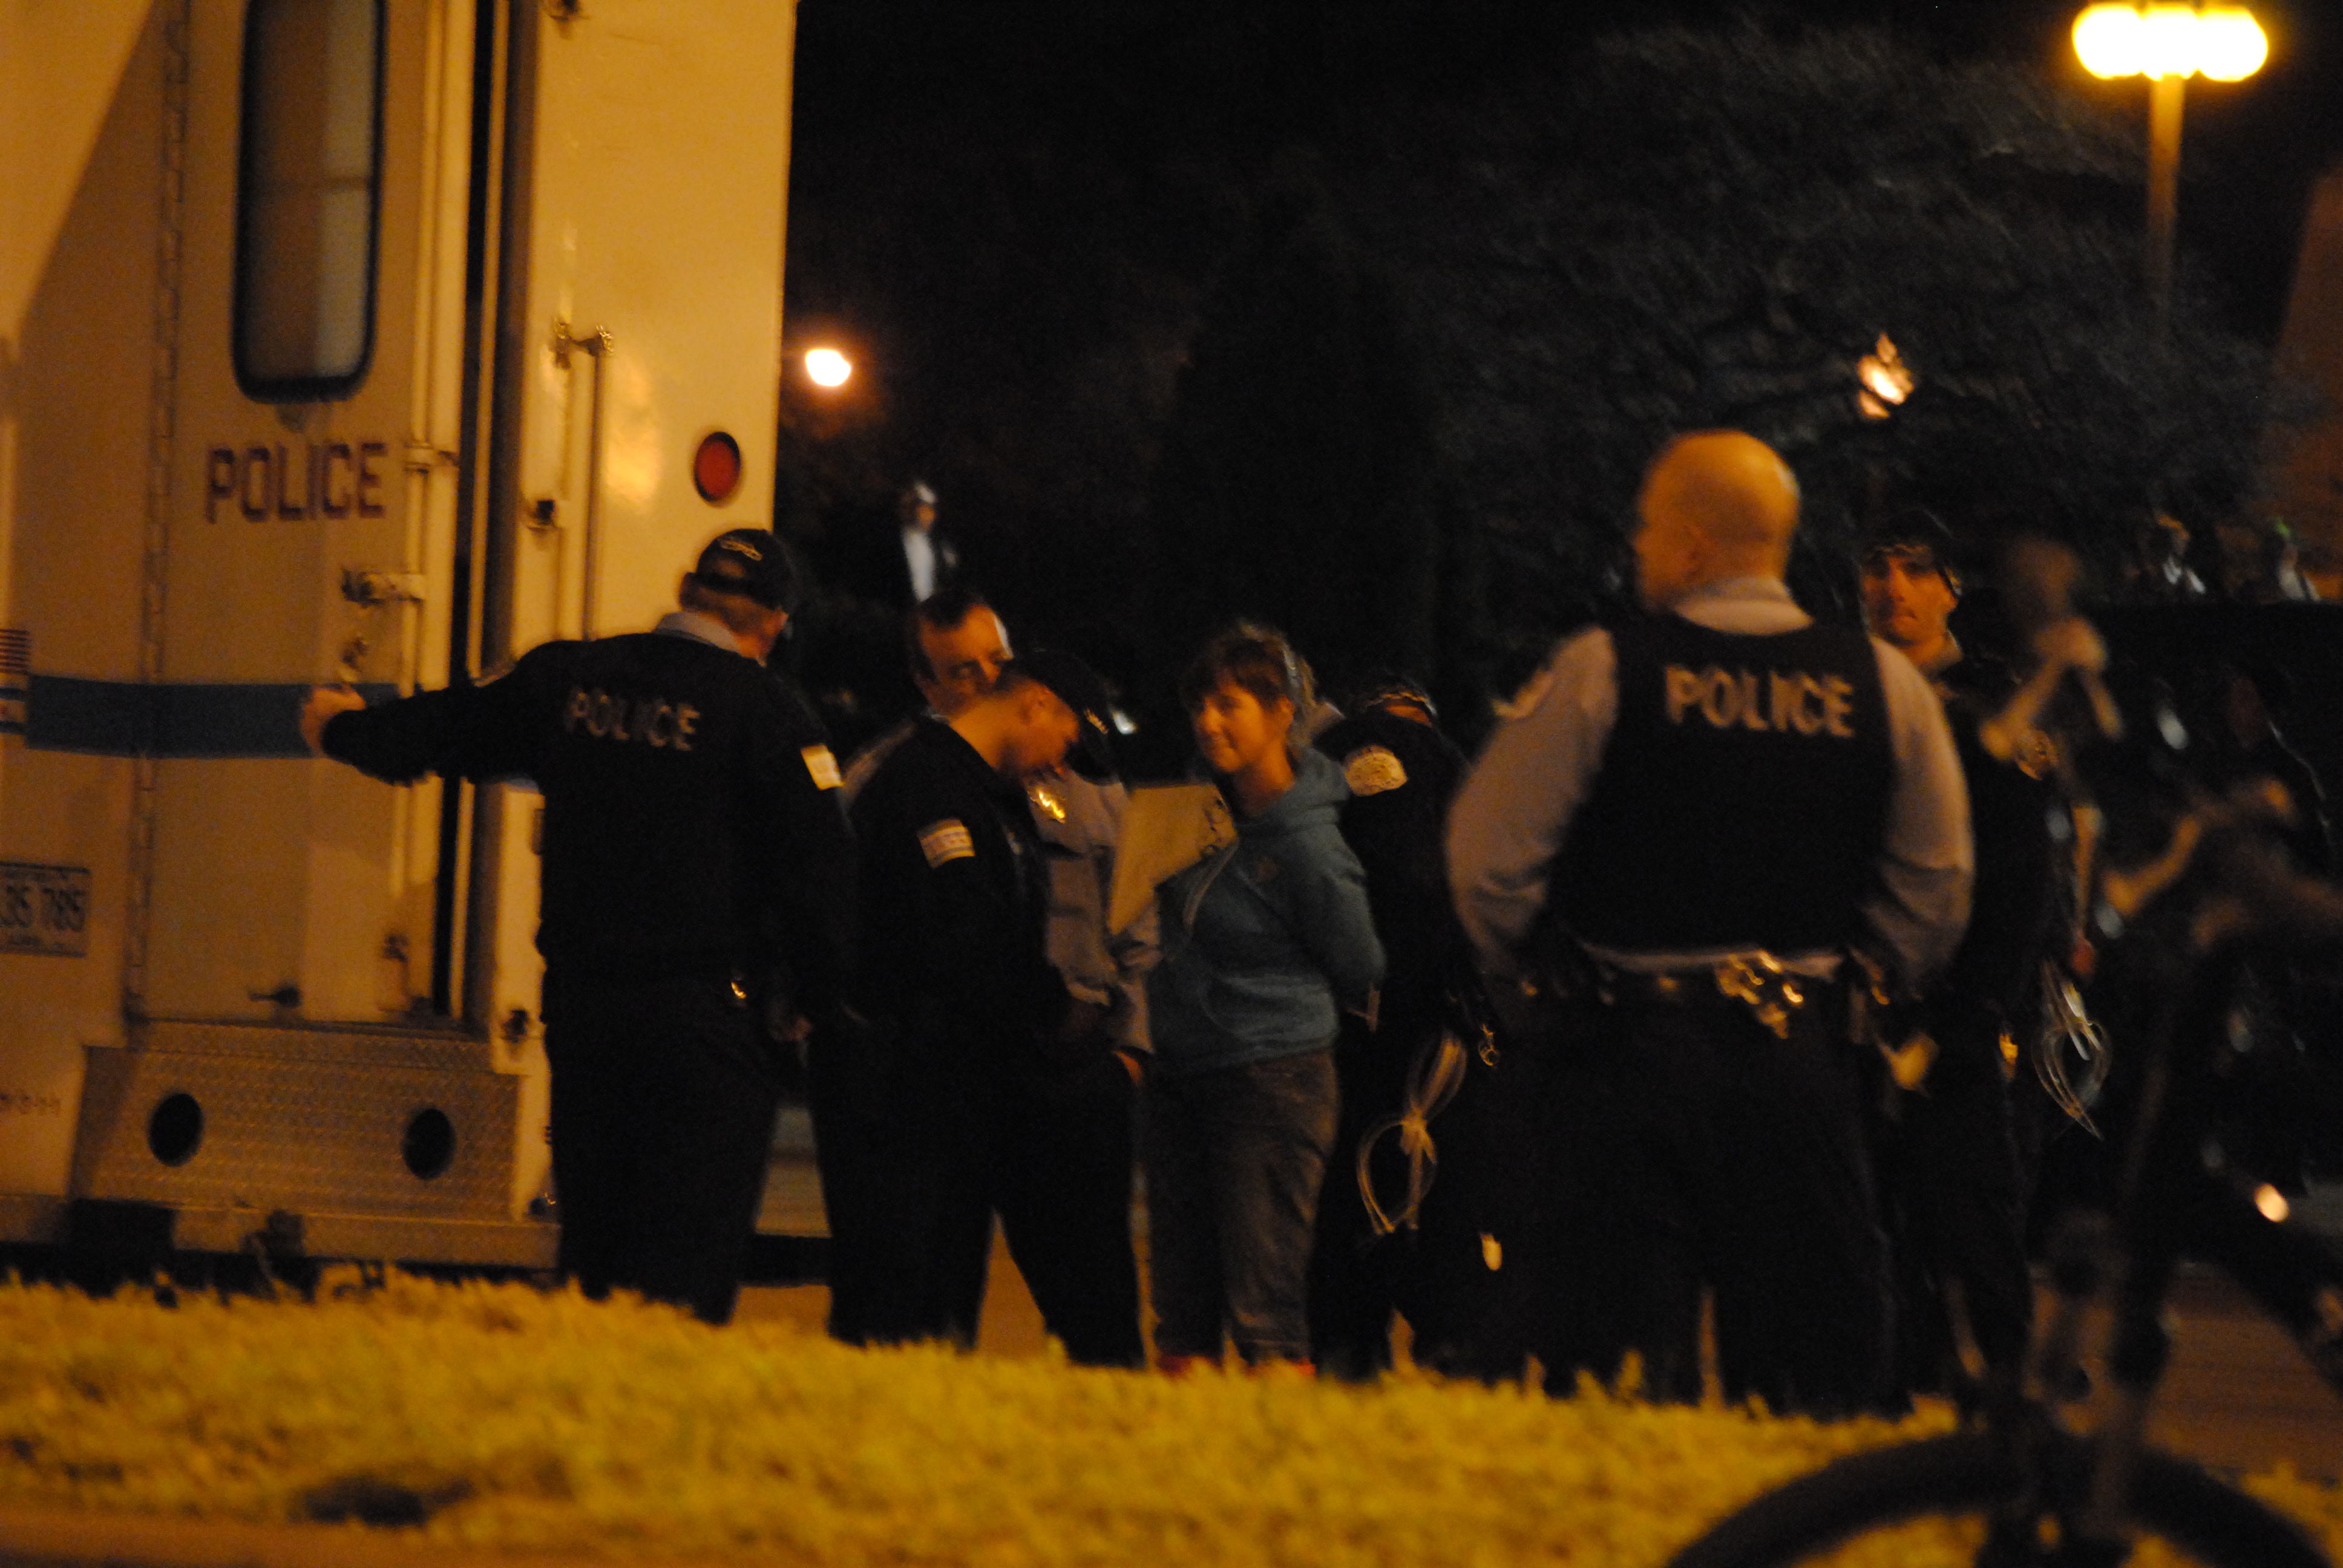 175 Arrests at Occupy Chicago